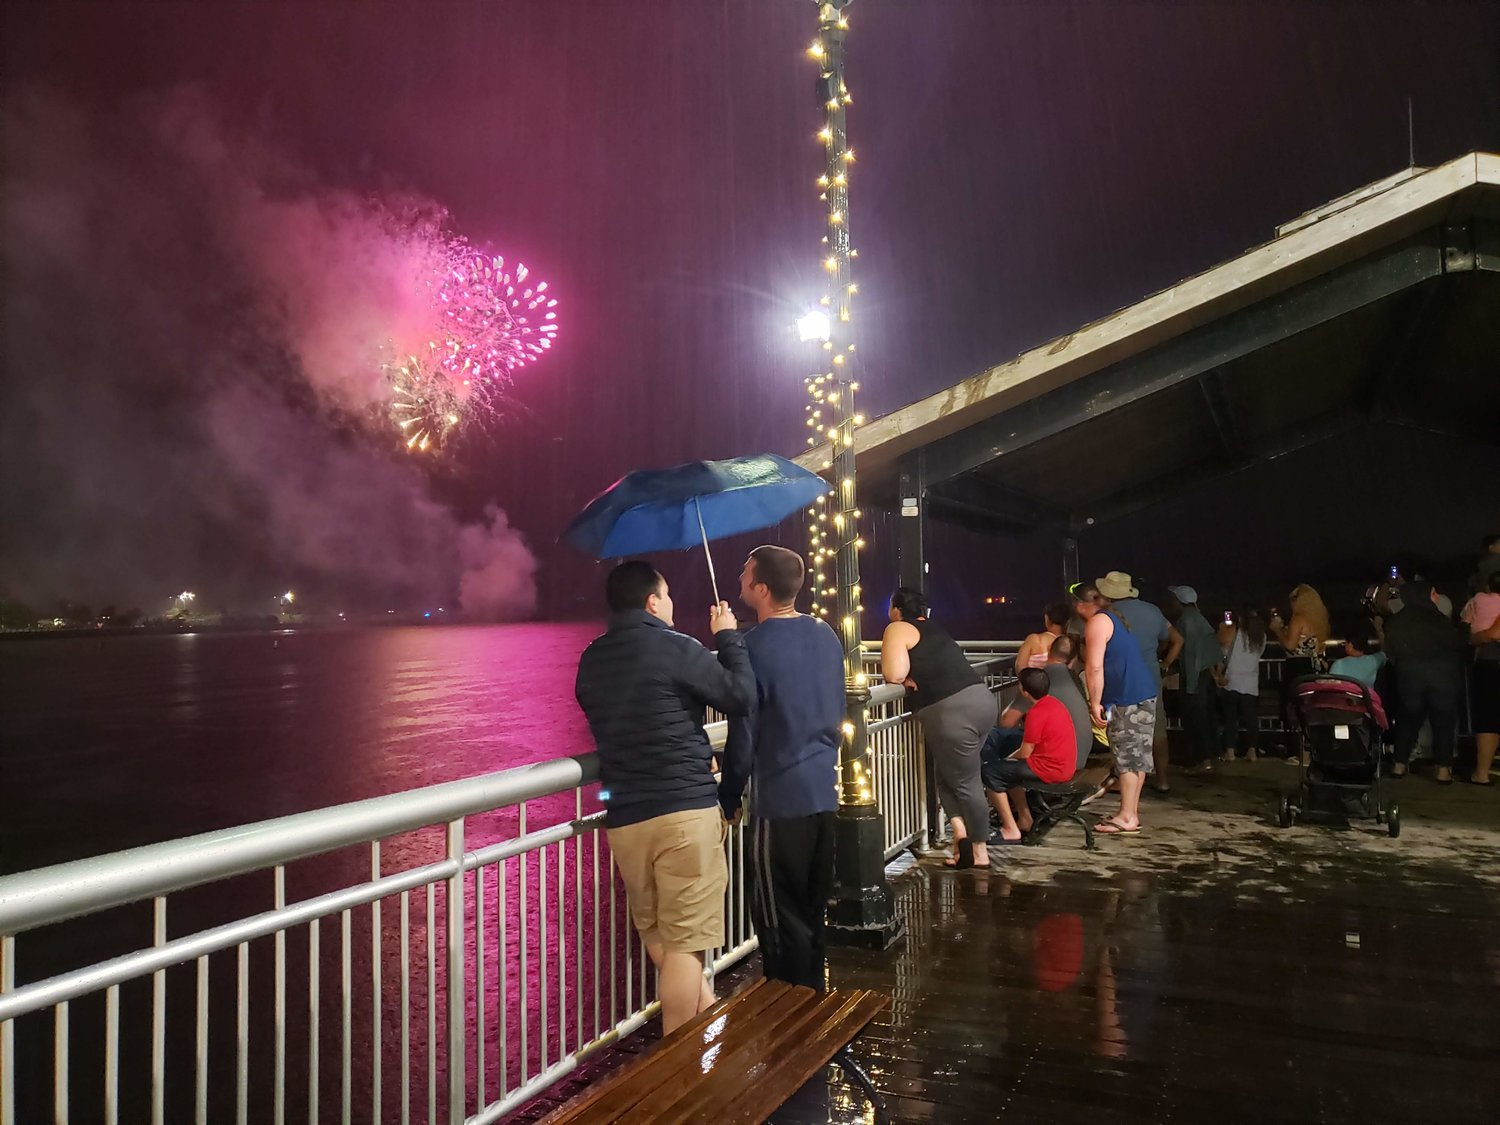 Spectators stood under the Woodcleft Scenic Pier gazebo or shared umbrellas to watch the fireworks in the rain.